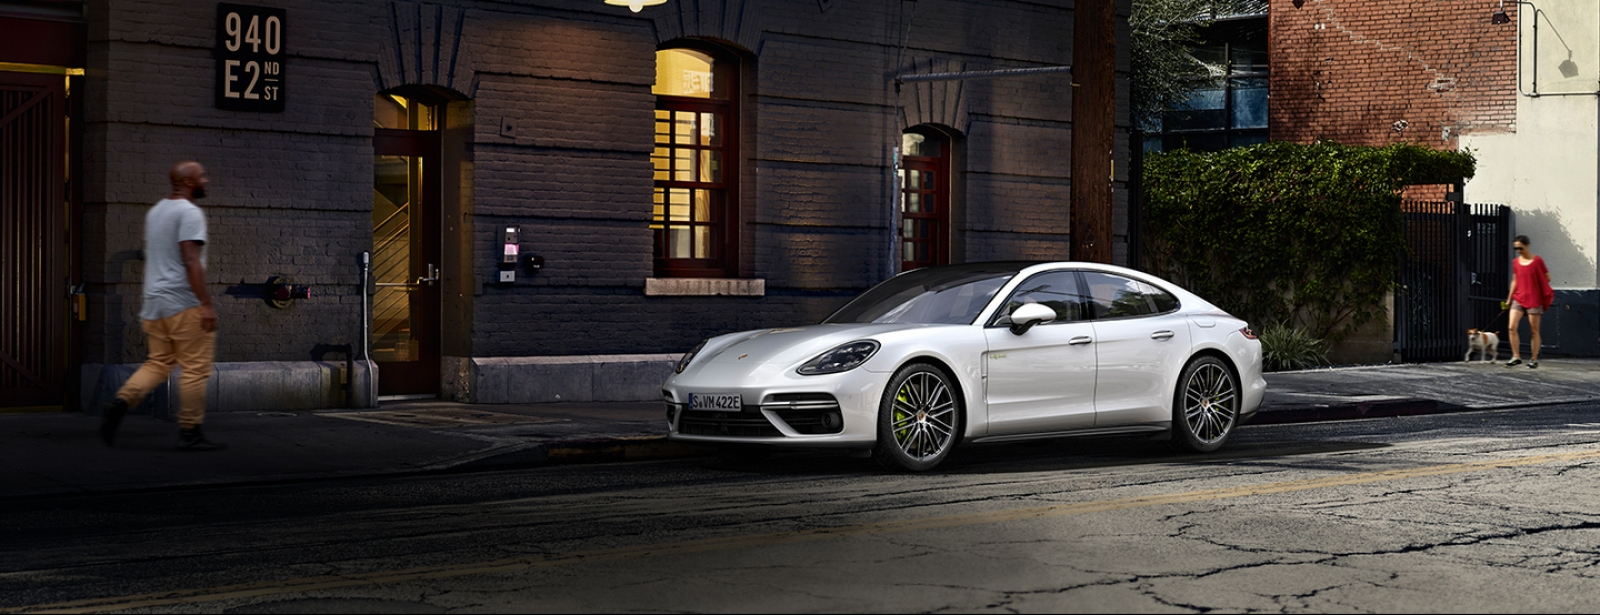 Porsche - Panamera Turbo S E-Hybrid - Courage changes everything.